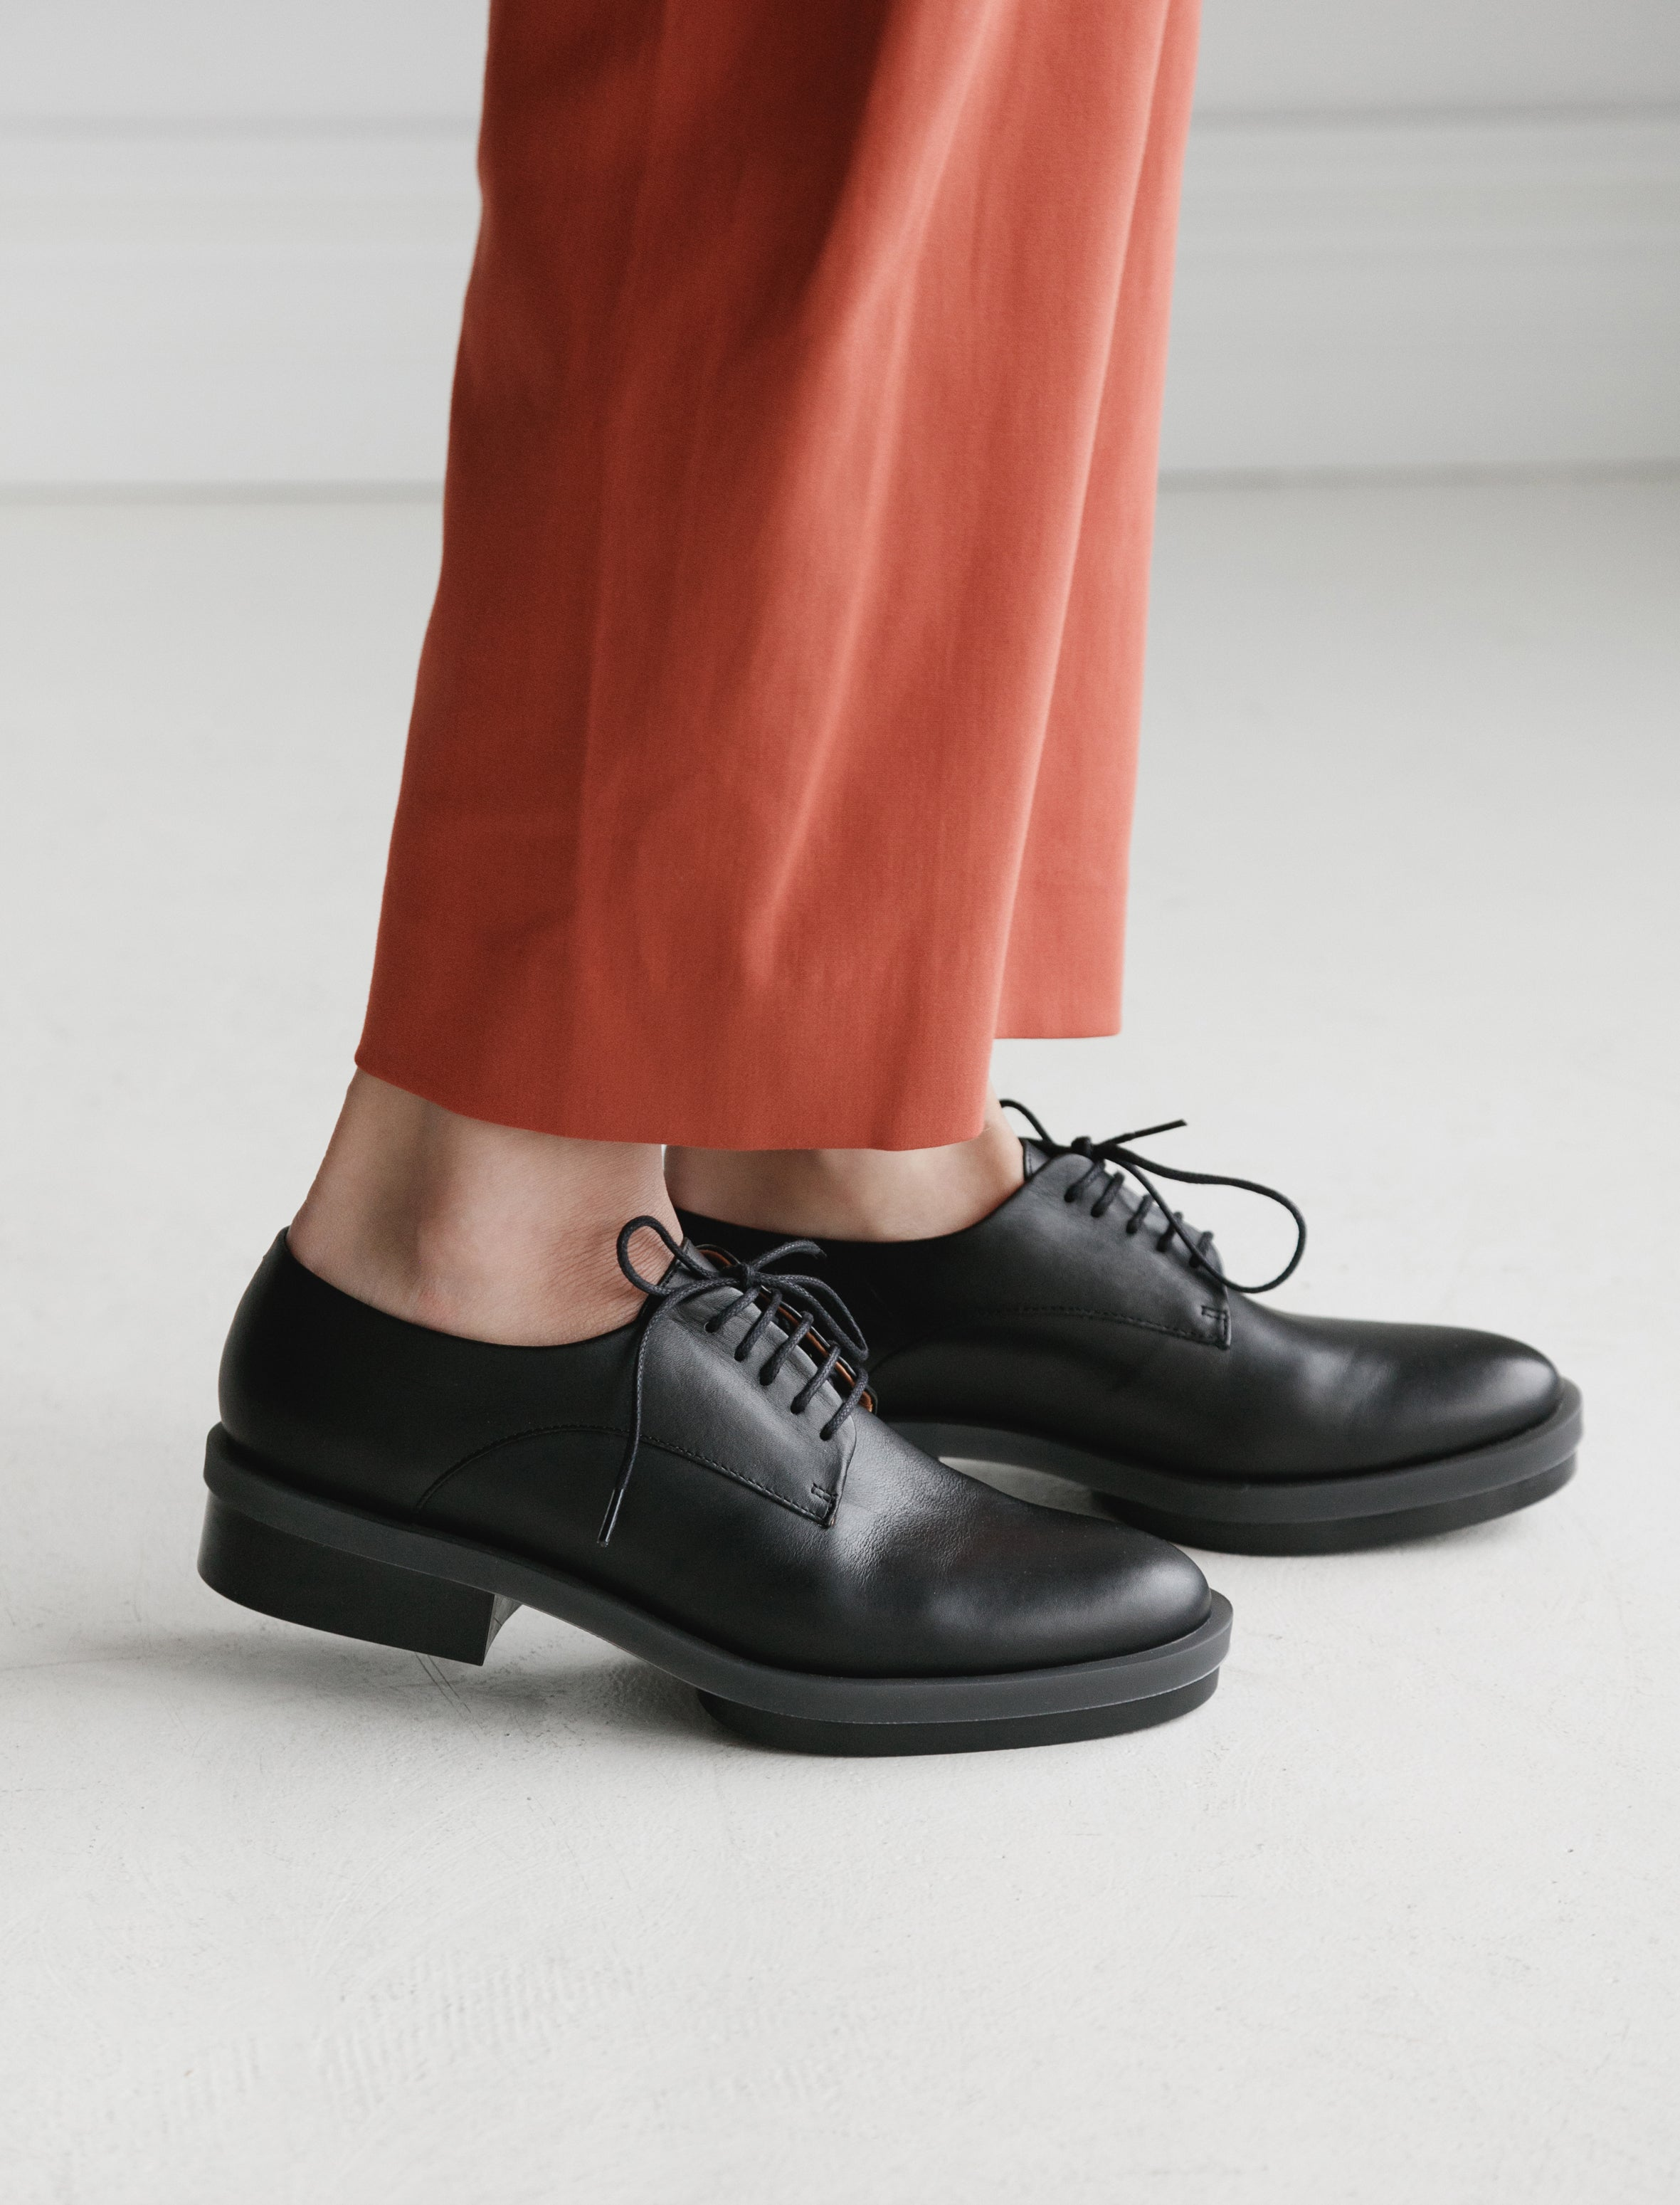 Clergerie Roma Rubber Sole Oxford